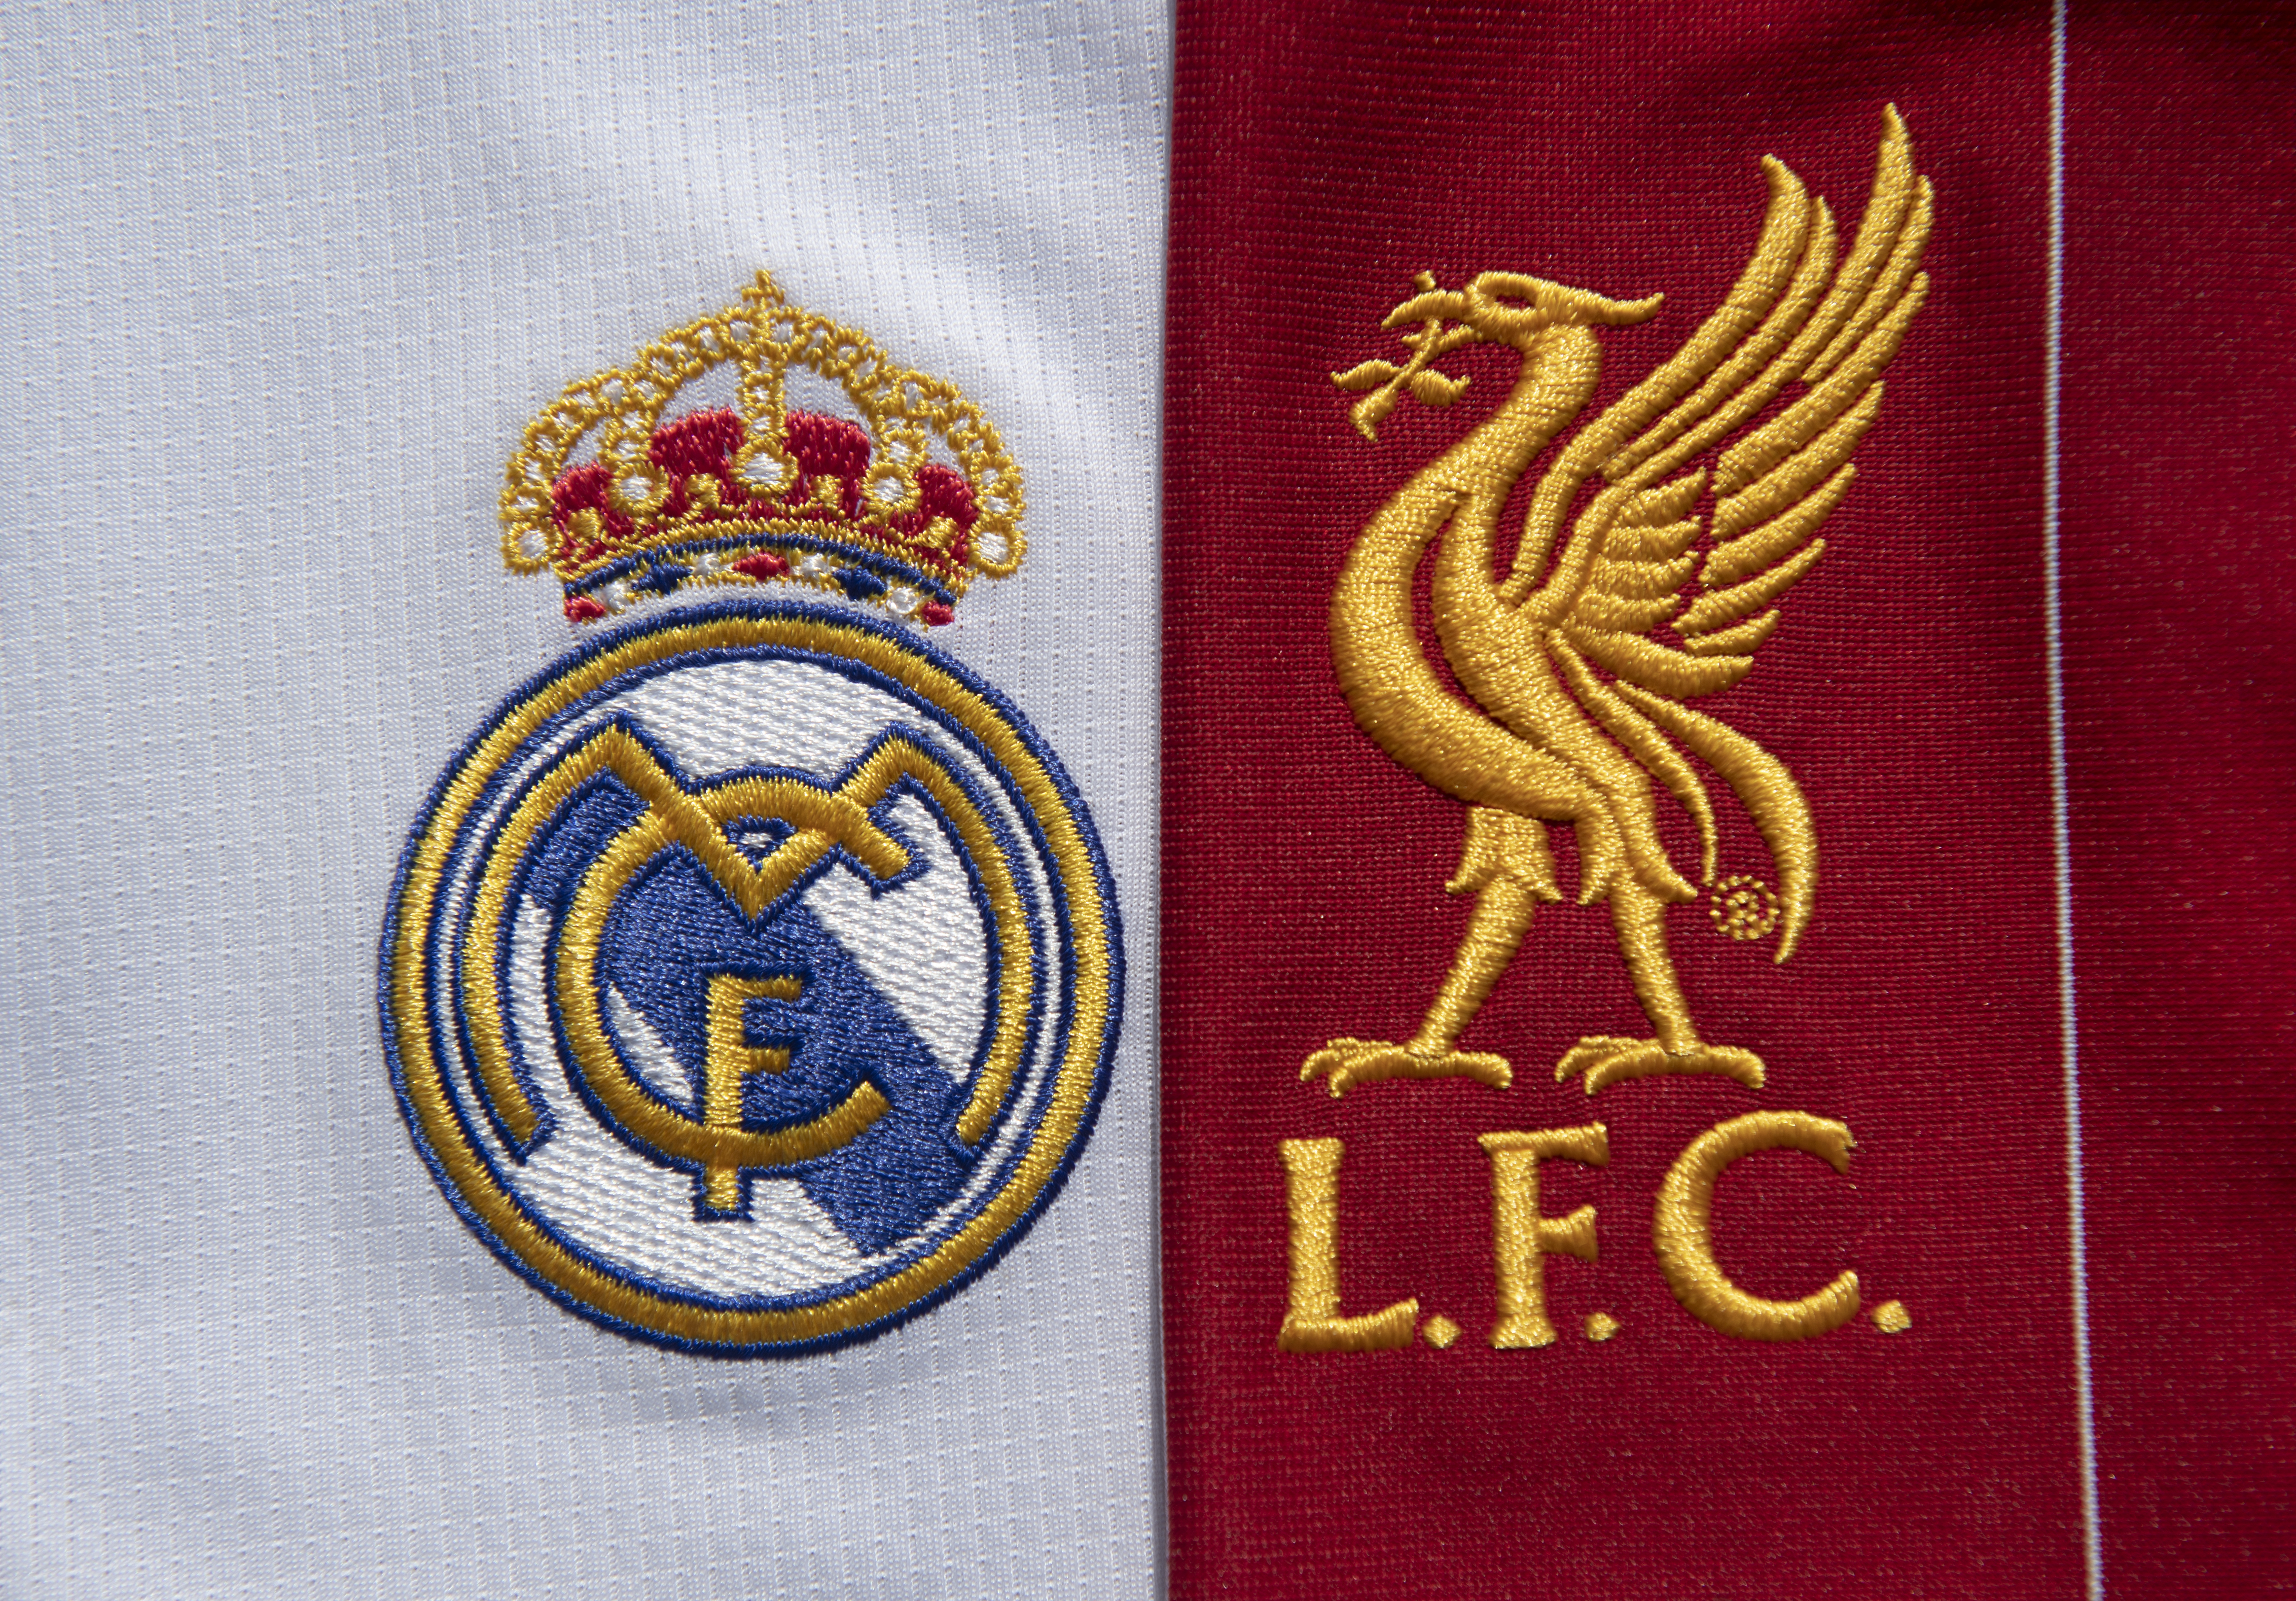 The Real Madrid and Liverpool FC Club Badges